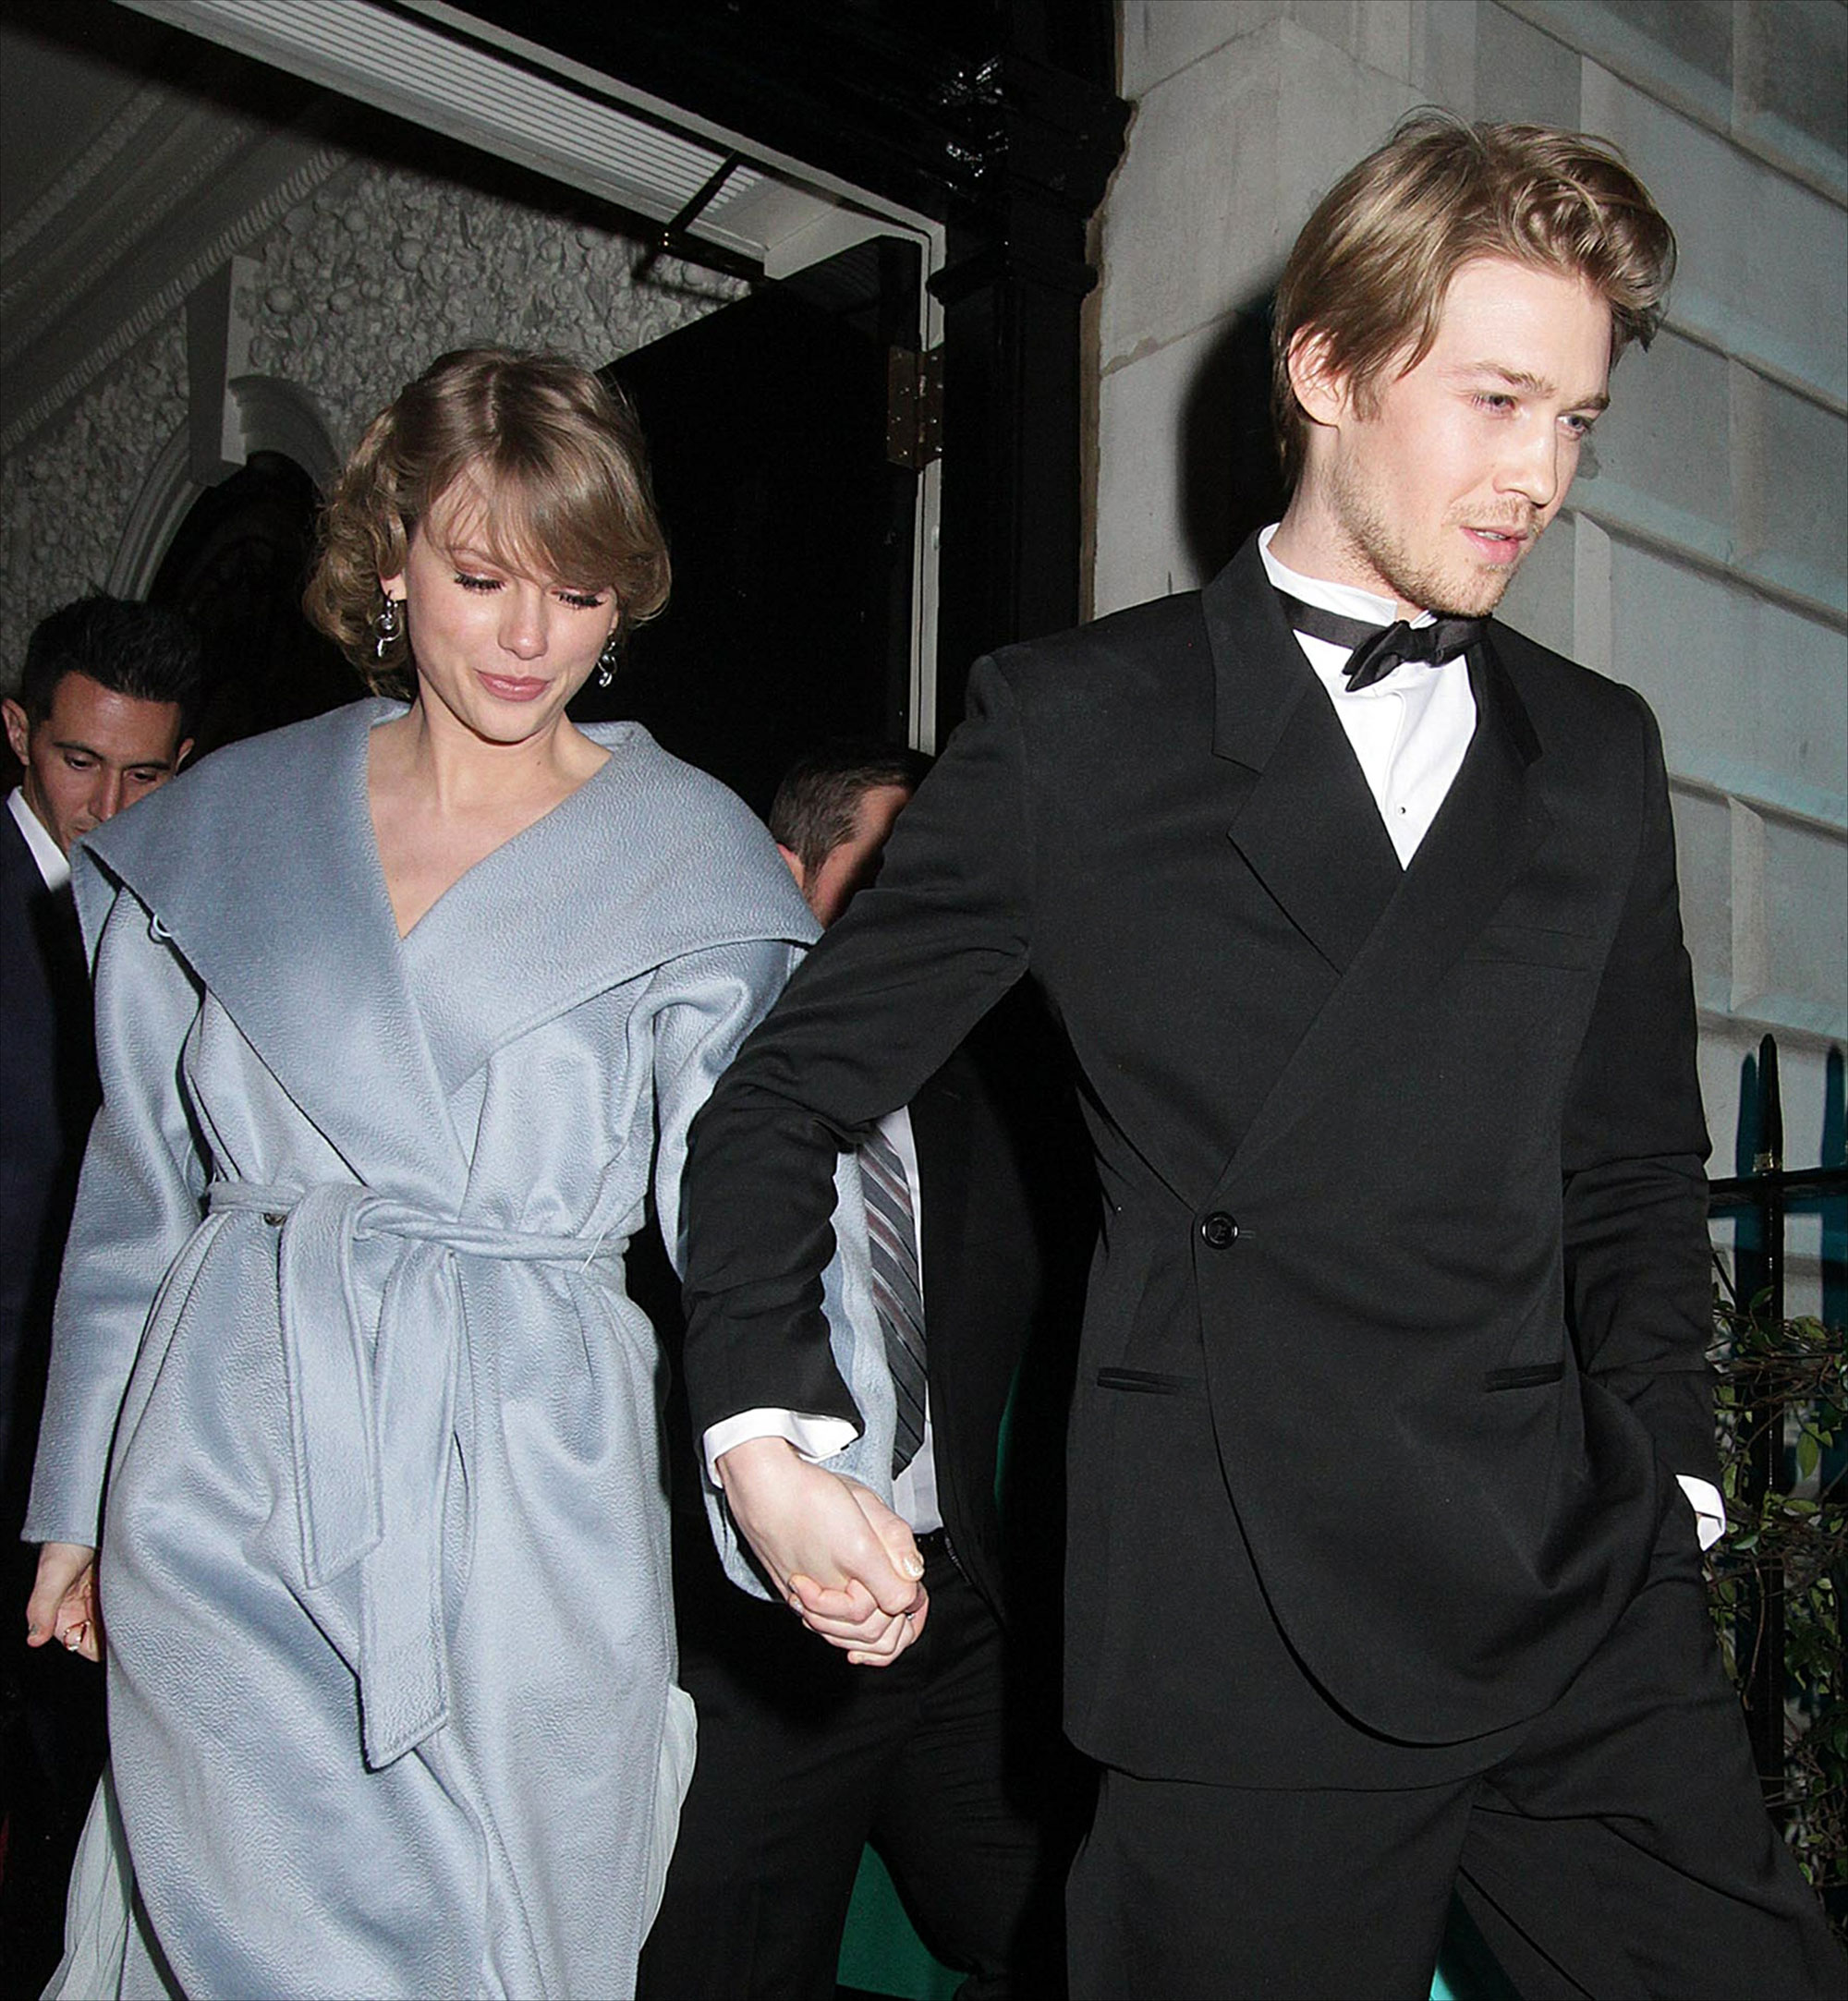 Taylor Swift and Joe Alwyn: A Timeline of Their 'Gorgeous' Relationship - The pair held hands once more while making a rare public appearance together at a British Academy of Film and Television Arts Awards afterparty in London on February 10.